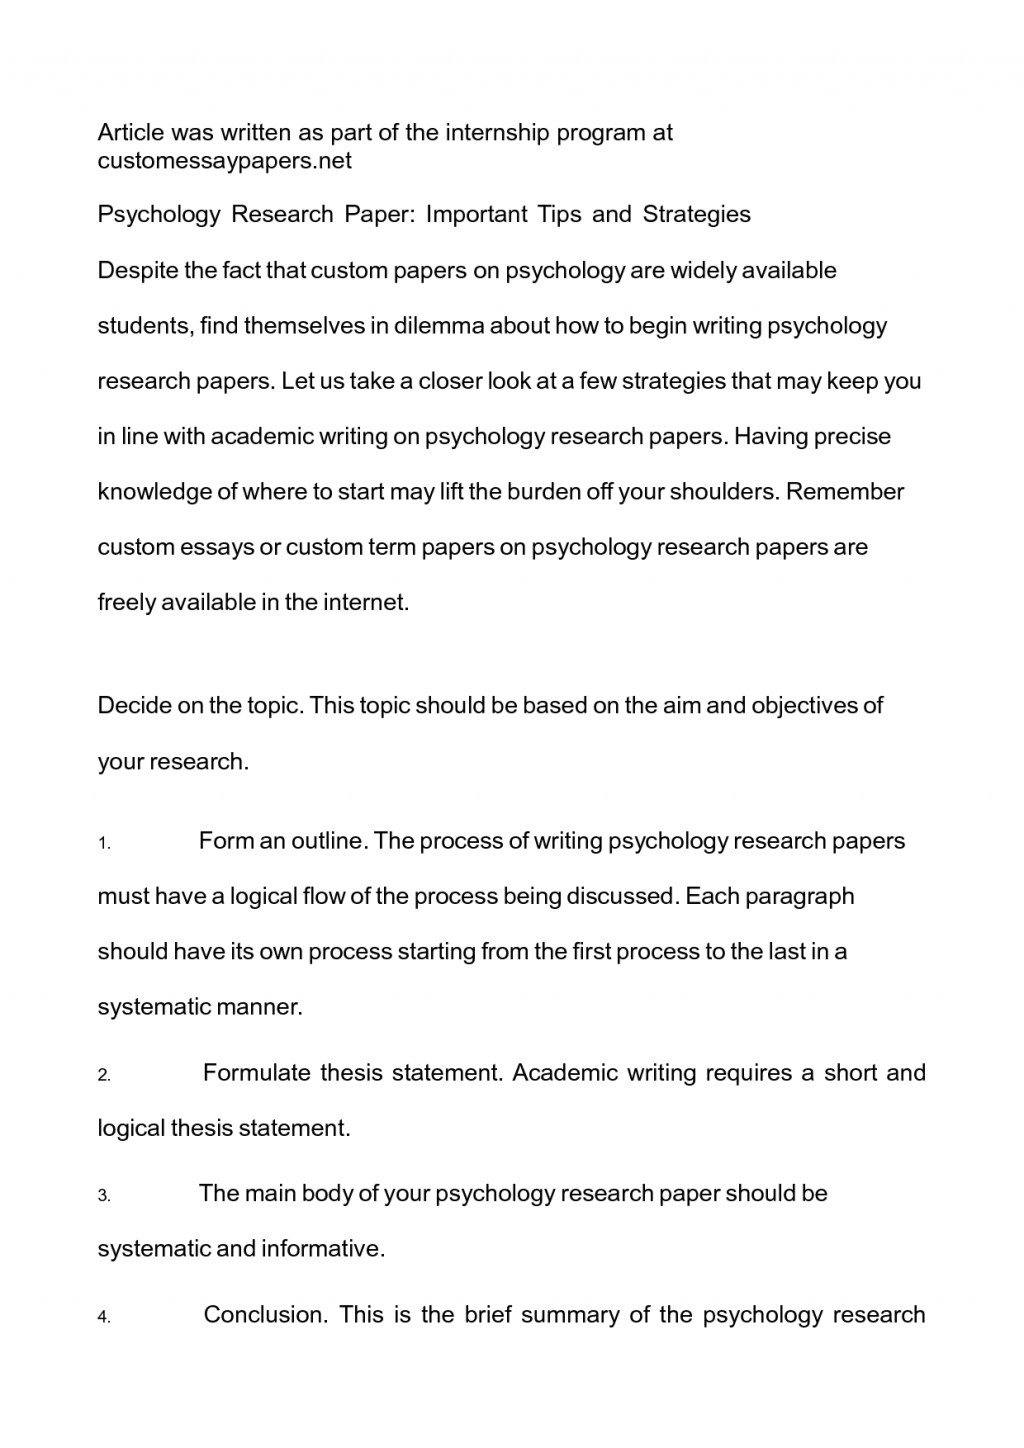 012 Research Paper Psychology Writing Services Topics College Awesome Students Large